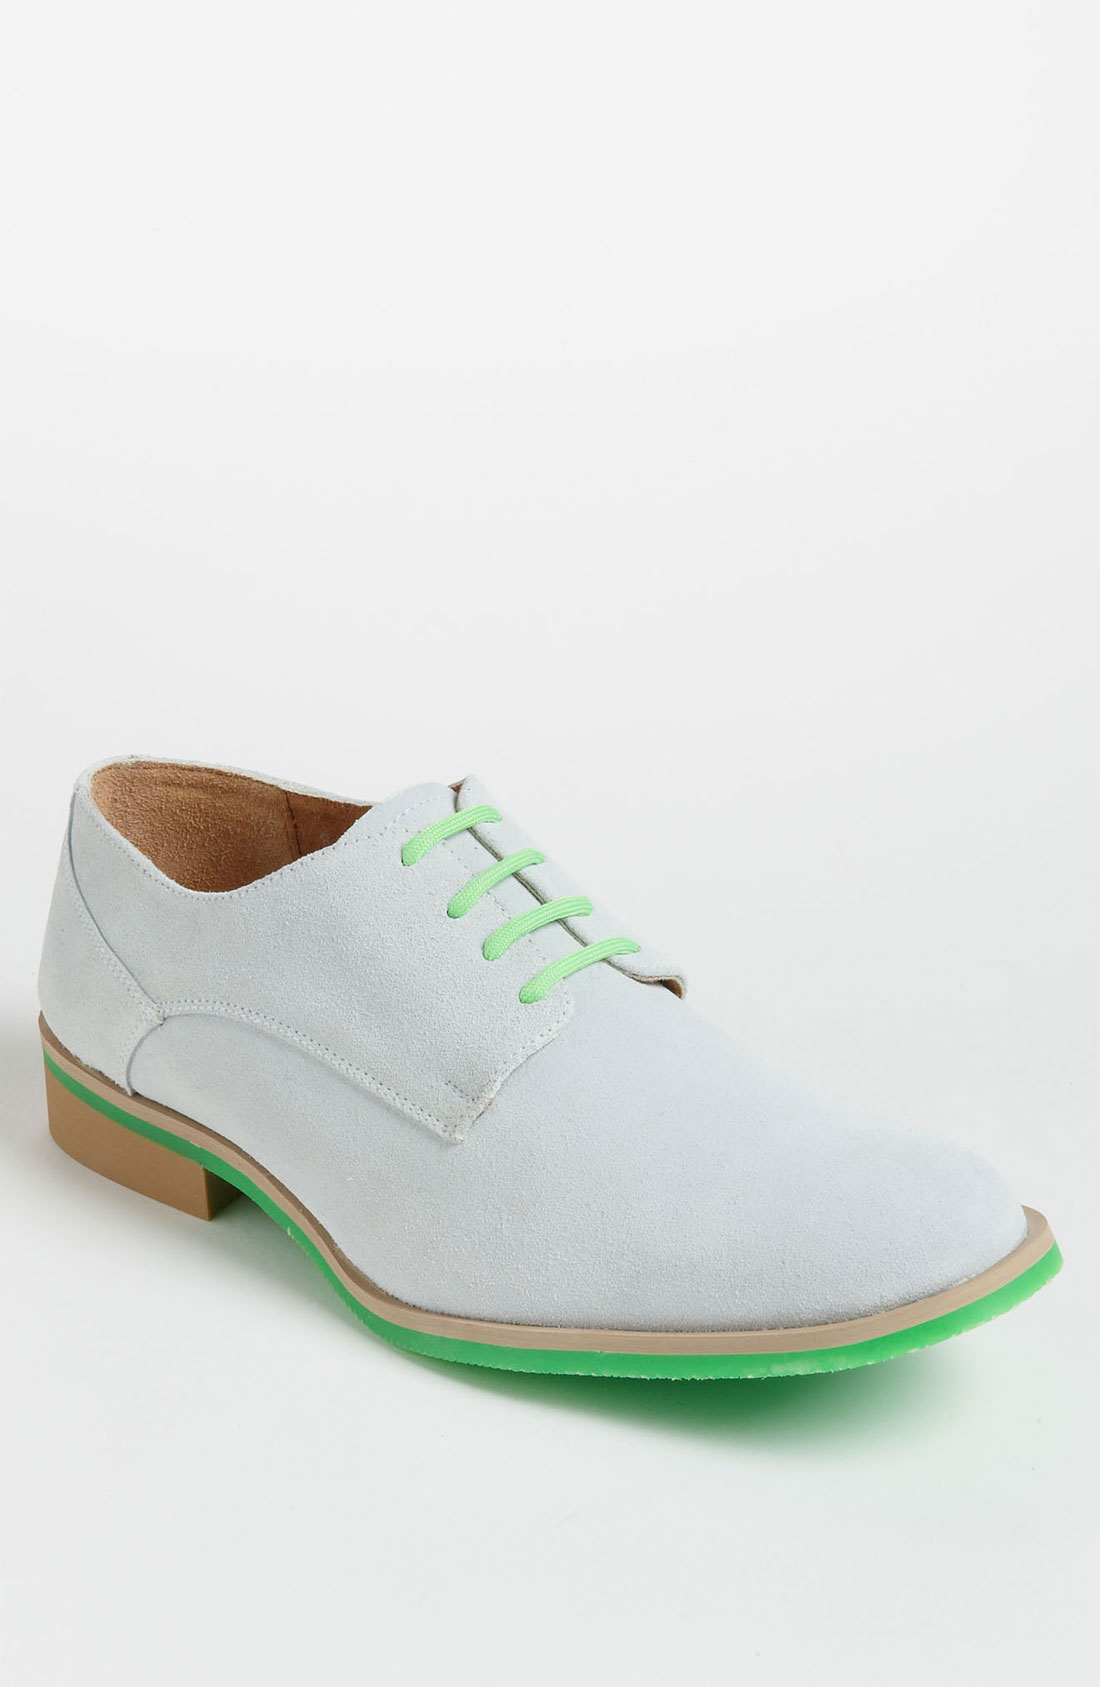 jd fisk callum suede buck shoe in green for white